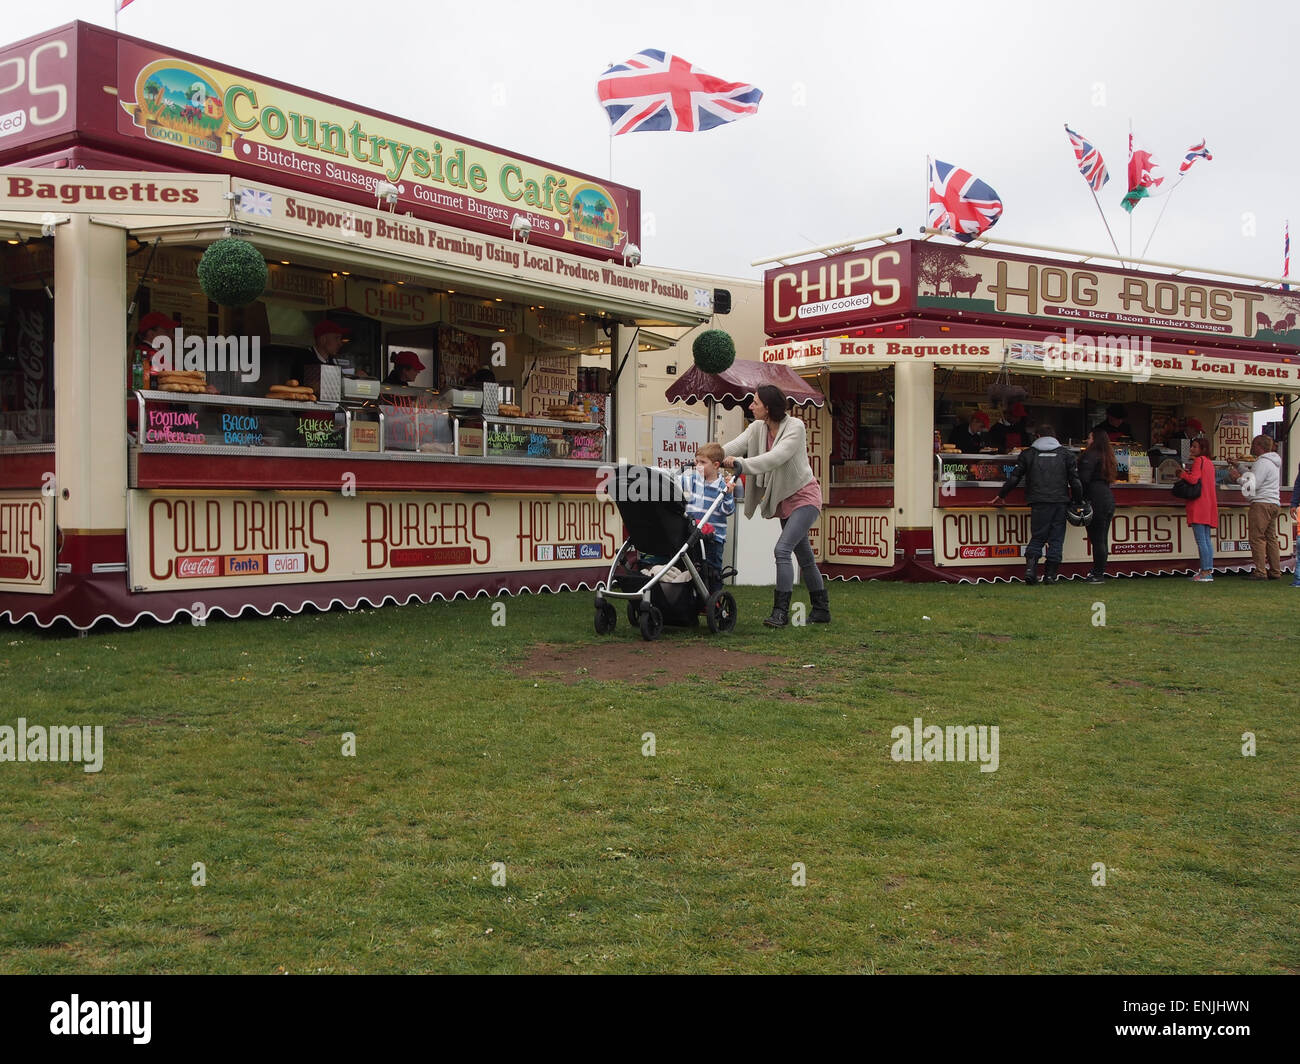 Food Trailers High Resolution Stock Photography And Images Alamy